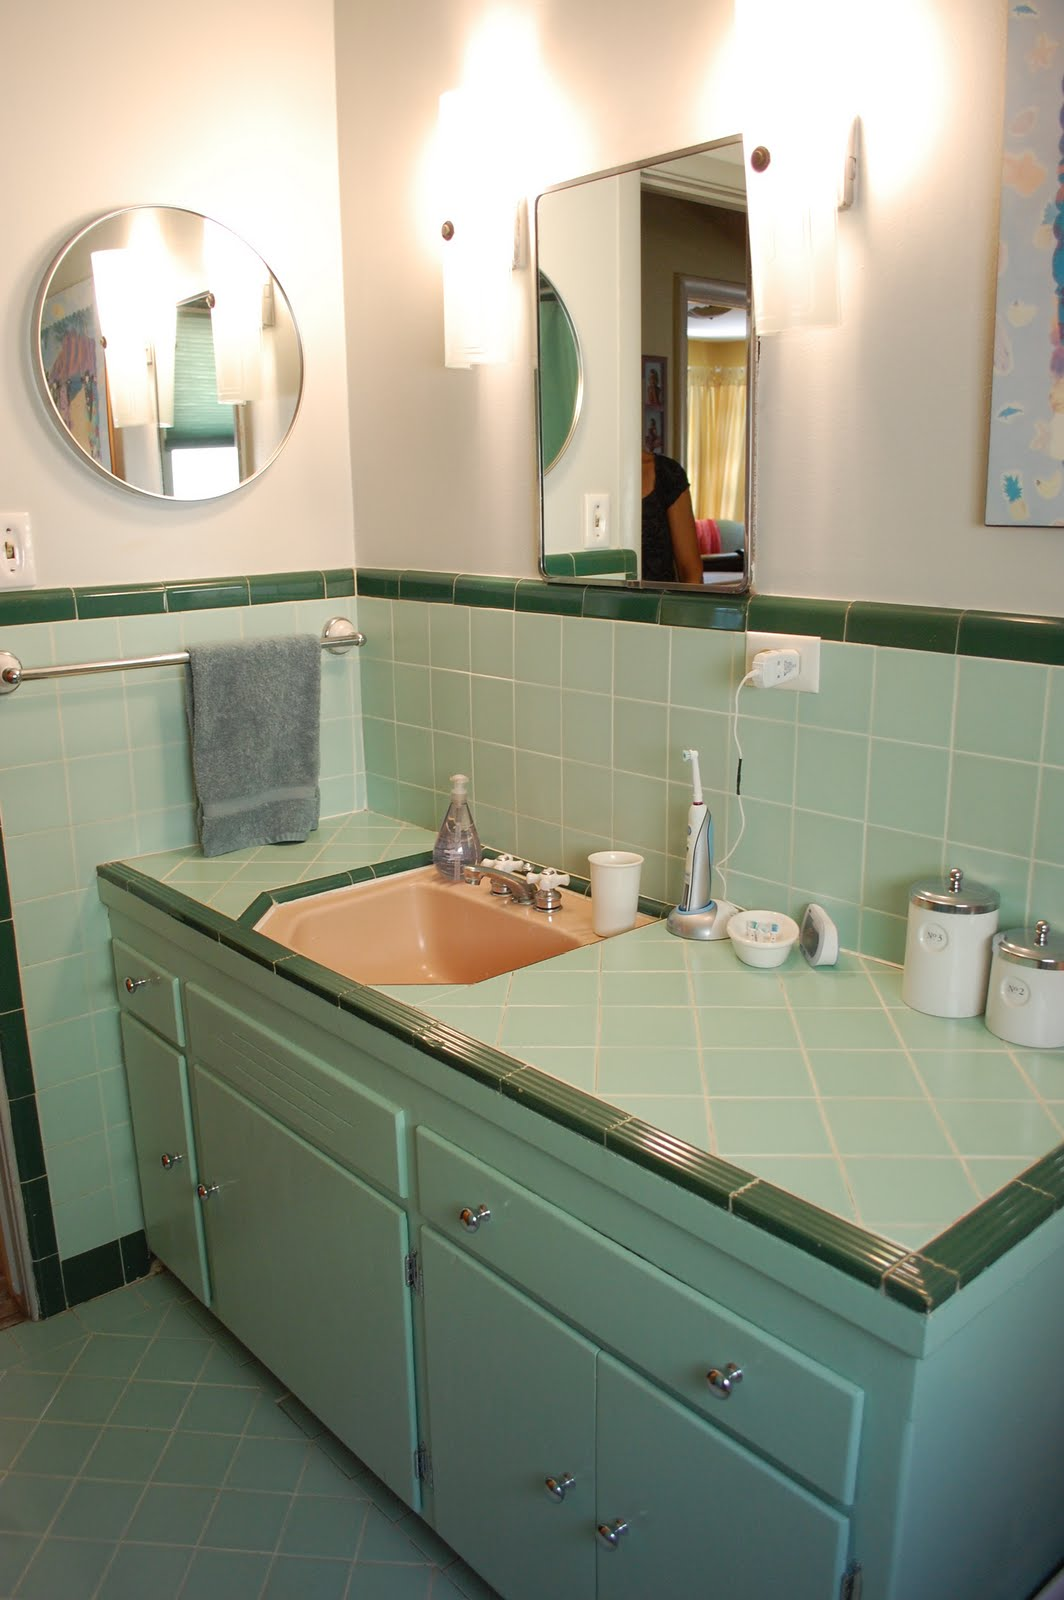 Color marie in praise of 1950 39 s bathrooms for 1950 bathroom ideas